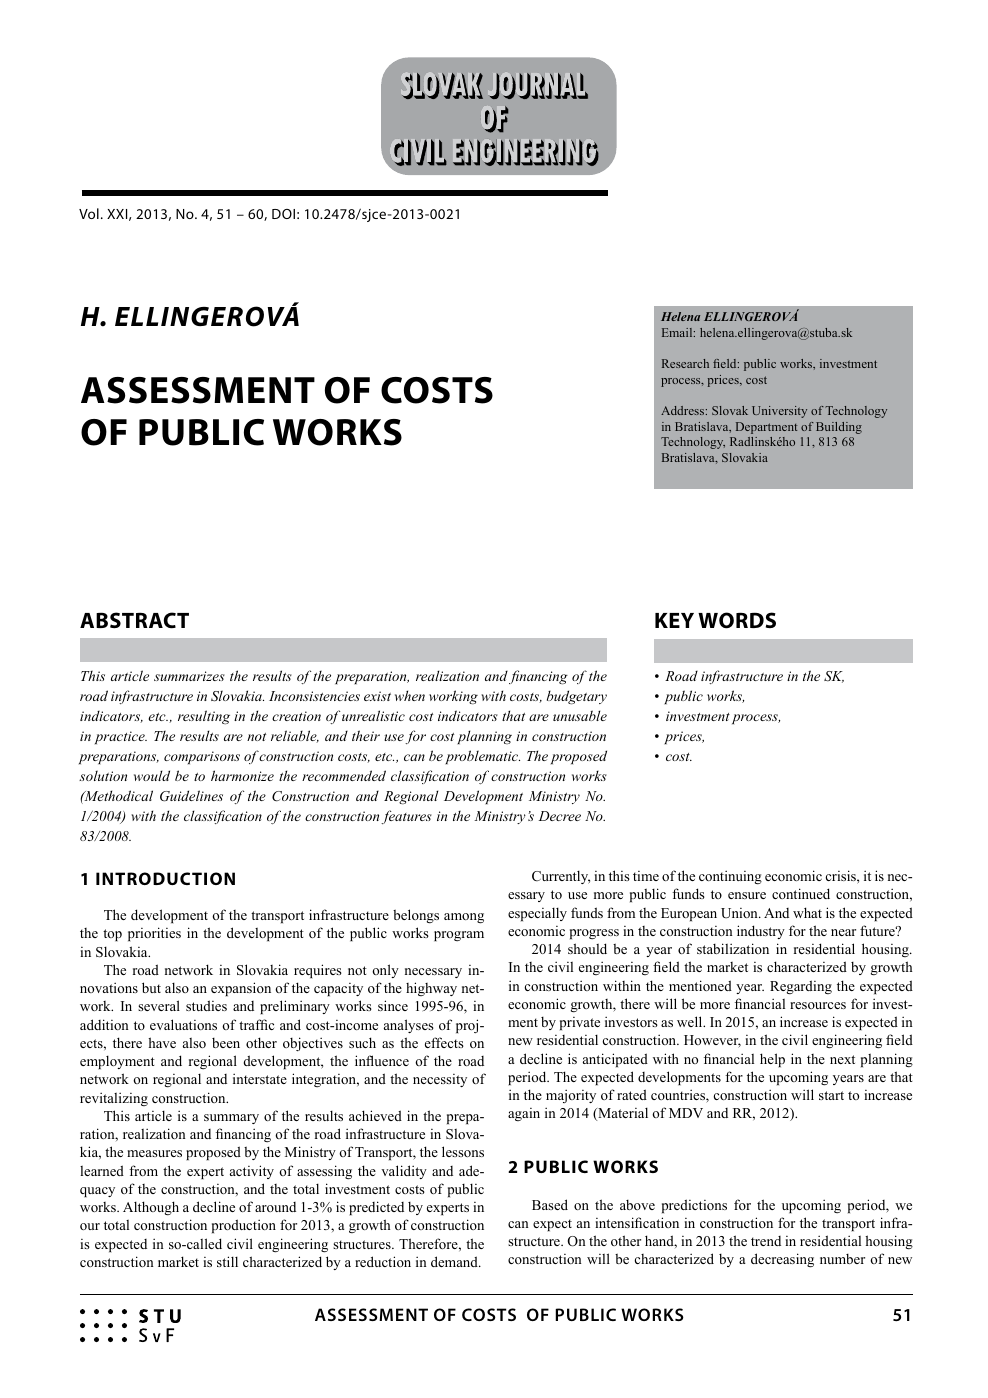 Assessment of Costs of Public Works – topic of research